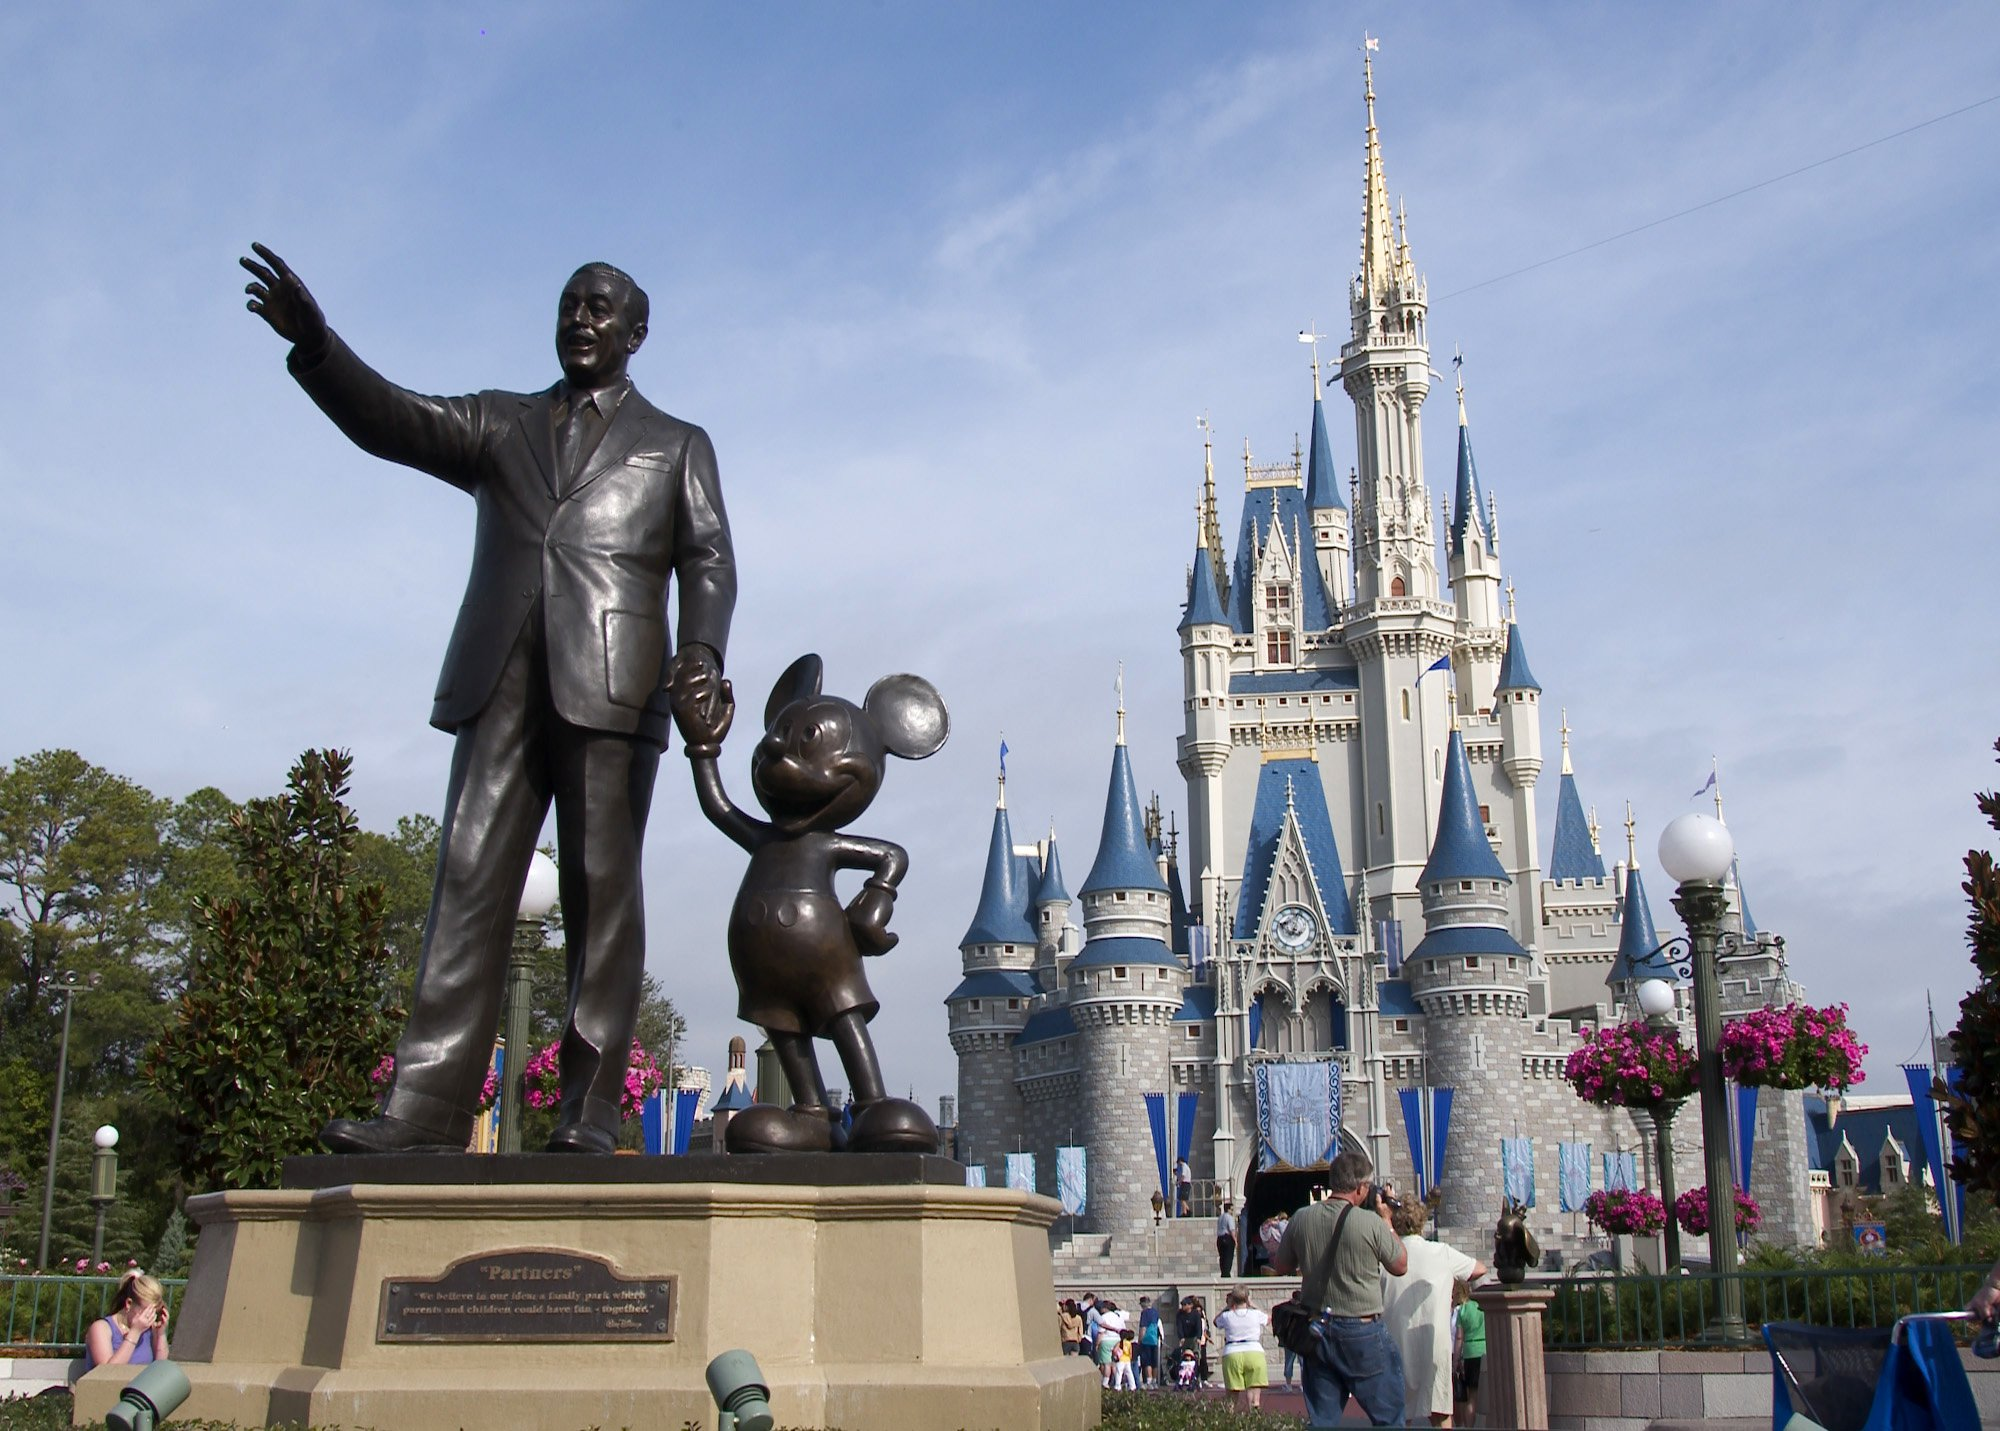 A statue of Walt Disney and Mickey Mouse stands in front of the Cinderella's castle at Walt Disney World's Magic Kingdom in Lake Buena Vista, Fla.